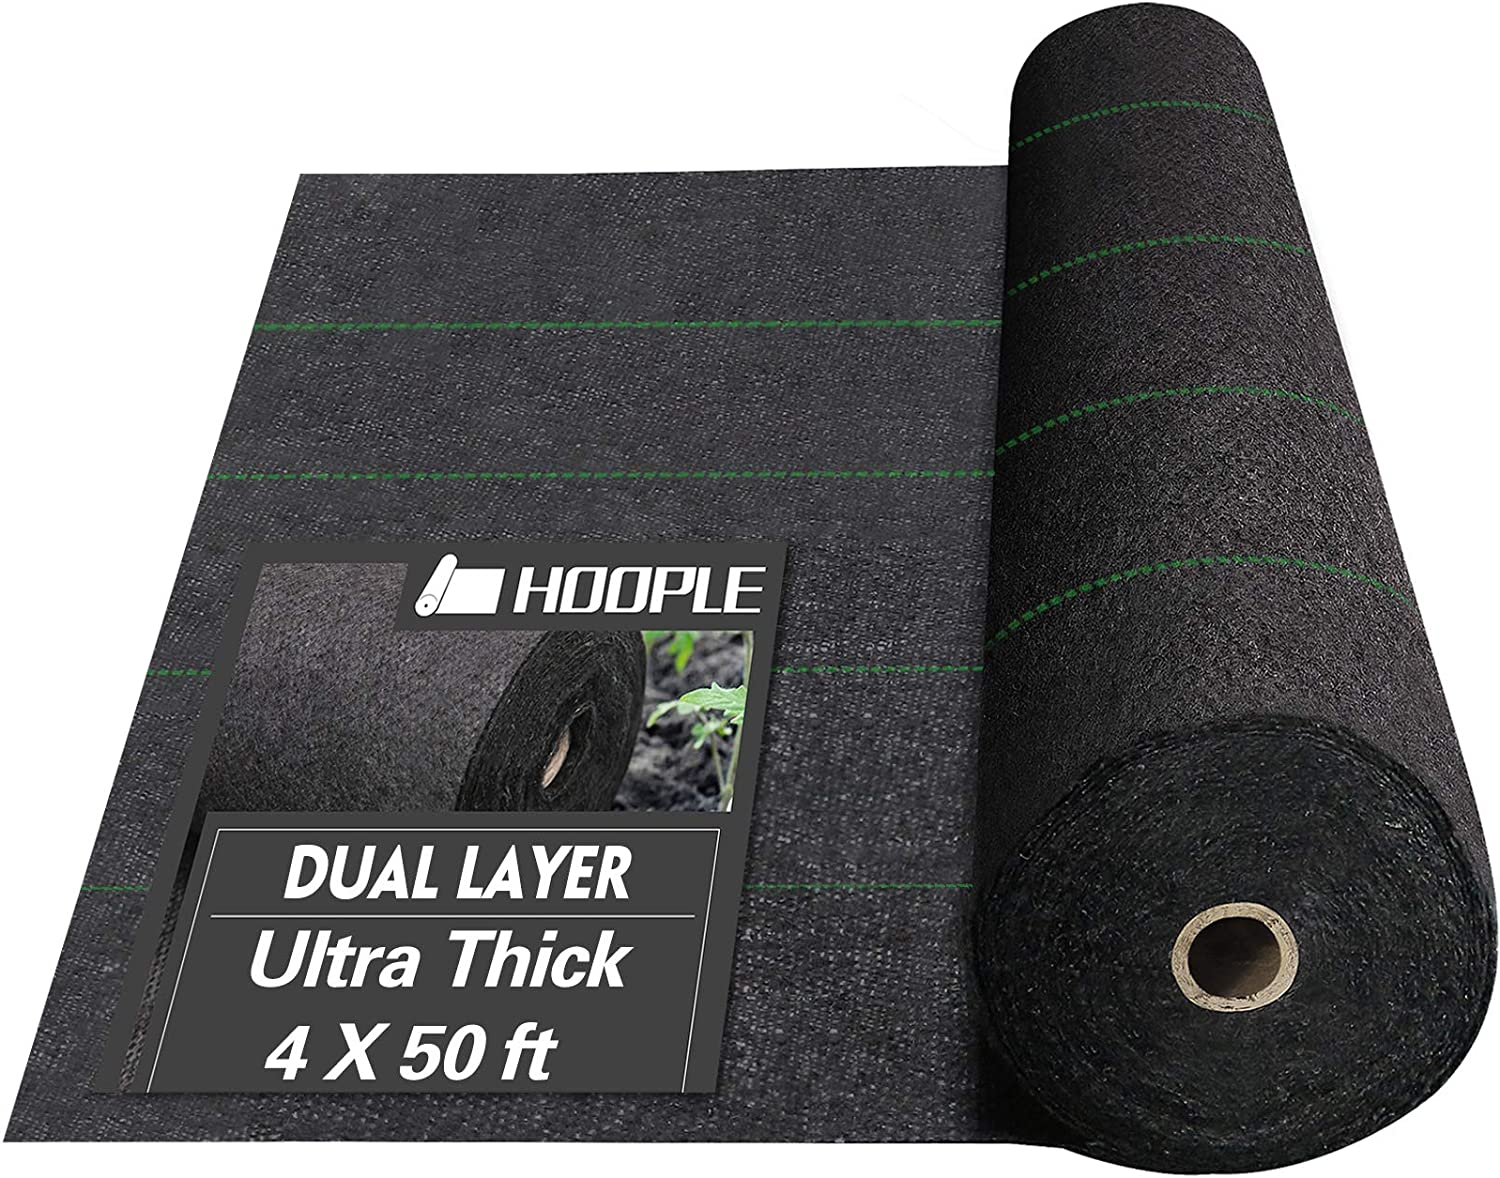 HOOPLE 5Oz Weed Barrier Fabric, Garden Landscape Fabric, Dual Layer Fabric, Cross-Over Design, Durable, Heavy Duty Gound Cover with Guide Strip Helps Align Plants. (4 X 50)